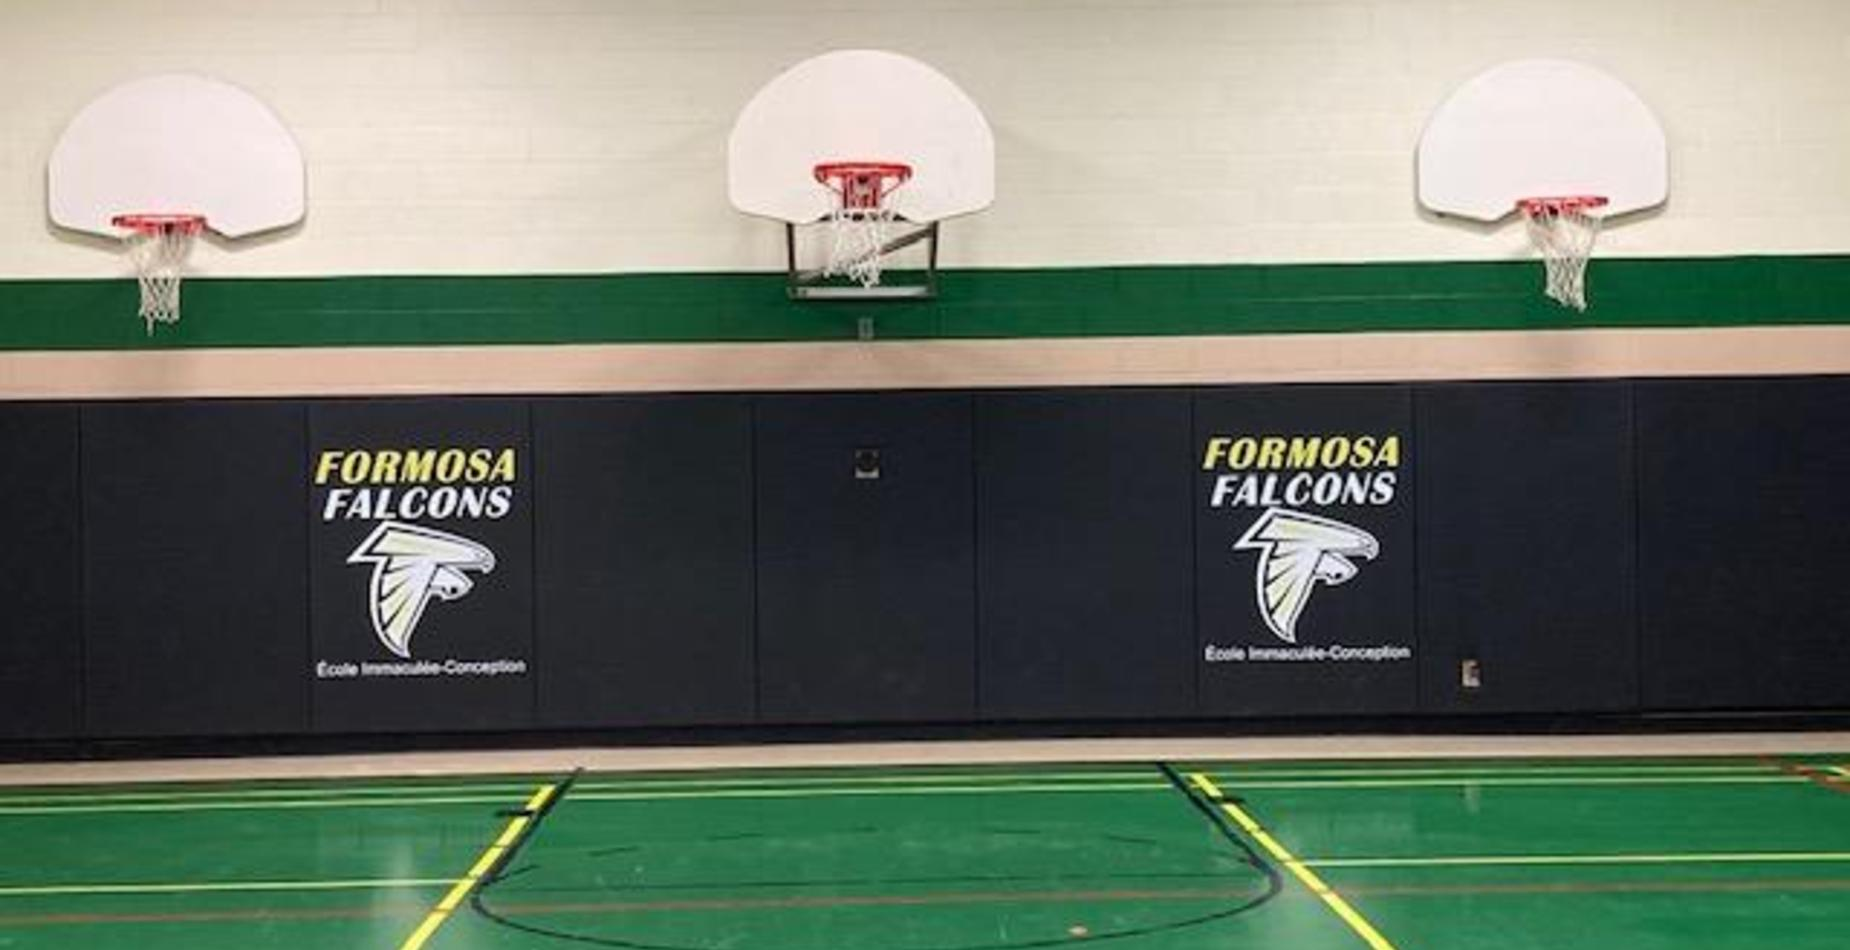 Photo the gym with school logo and basketball net.